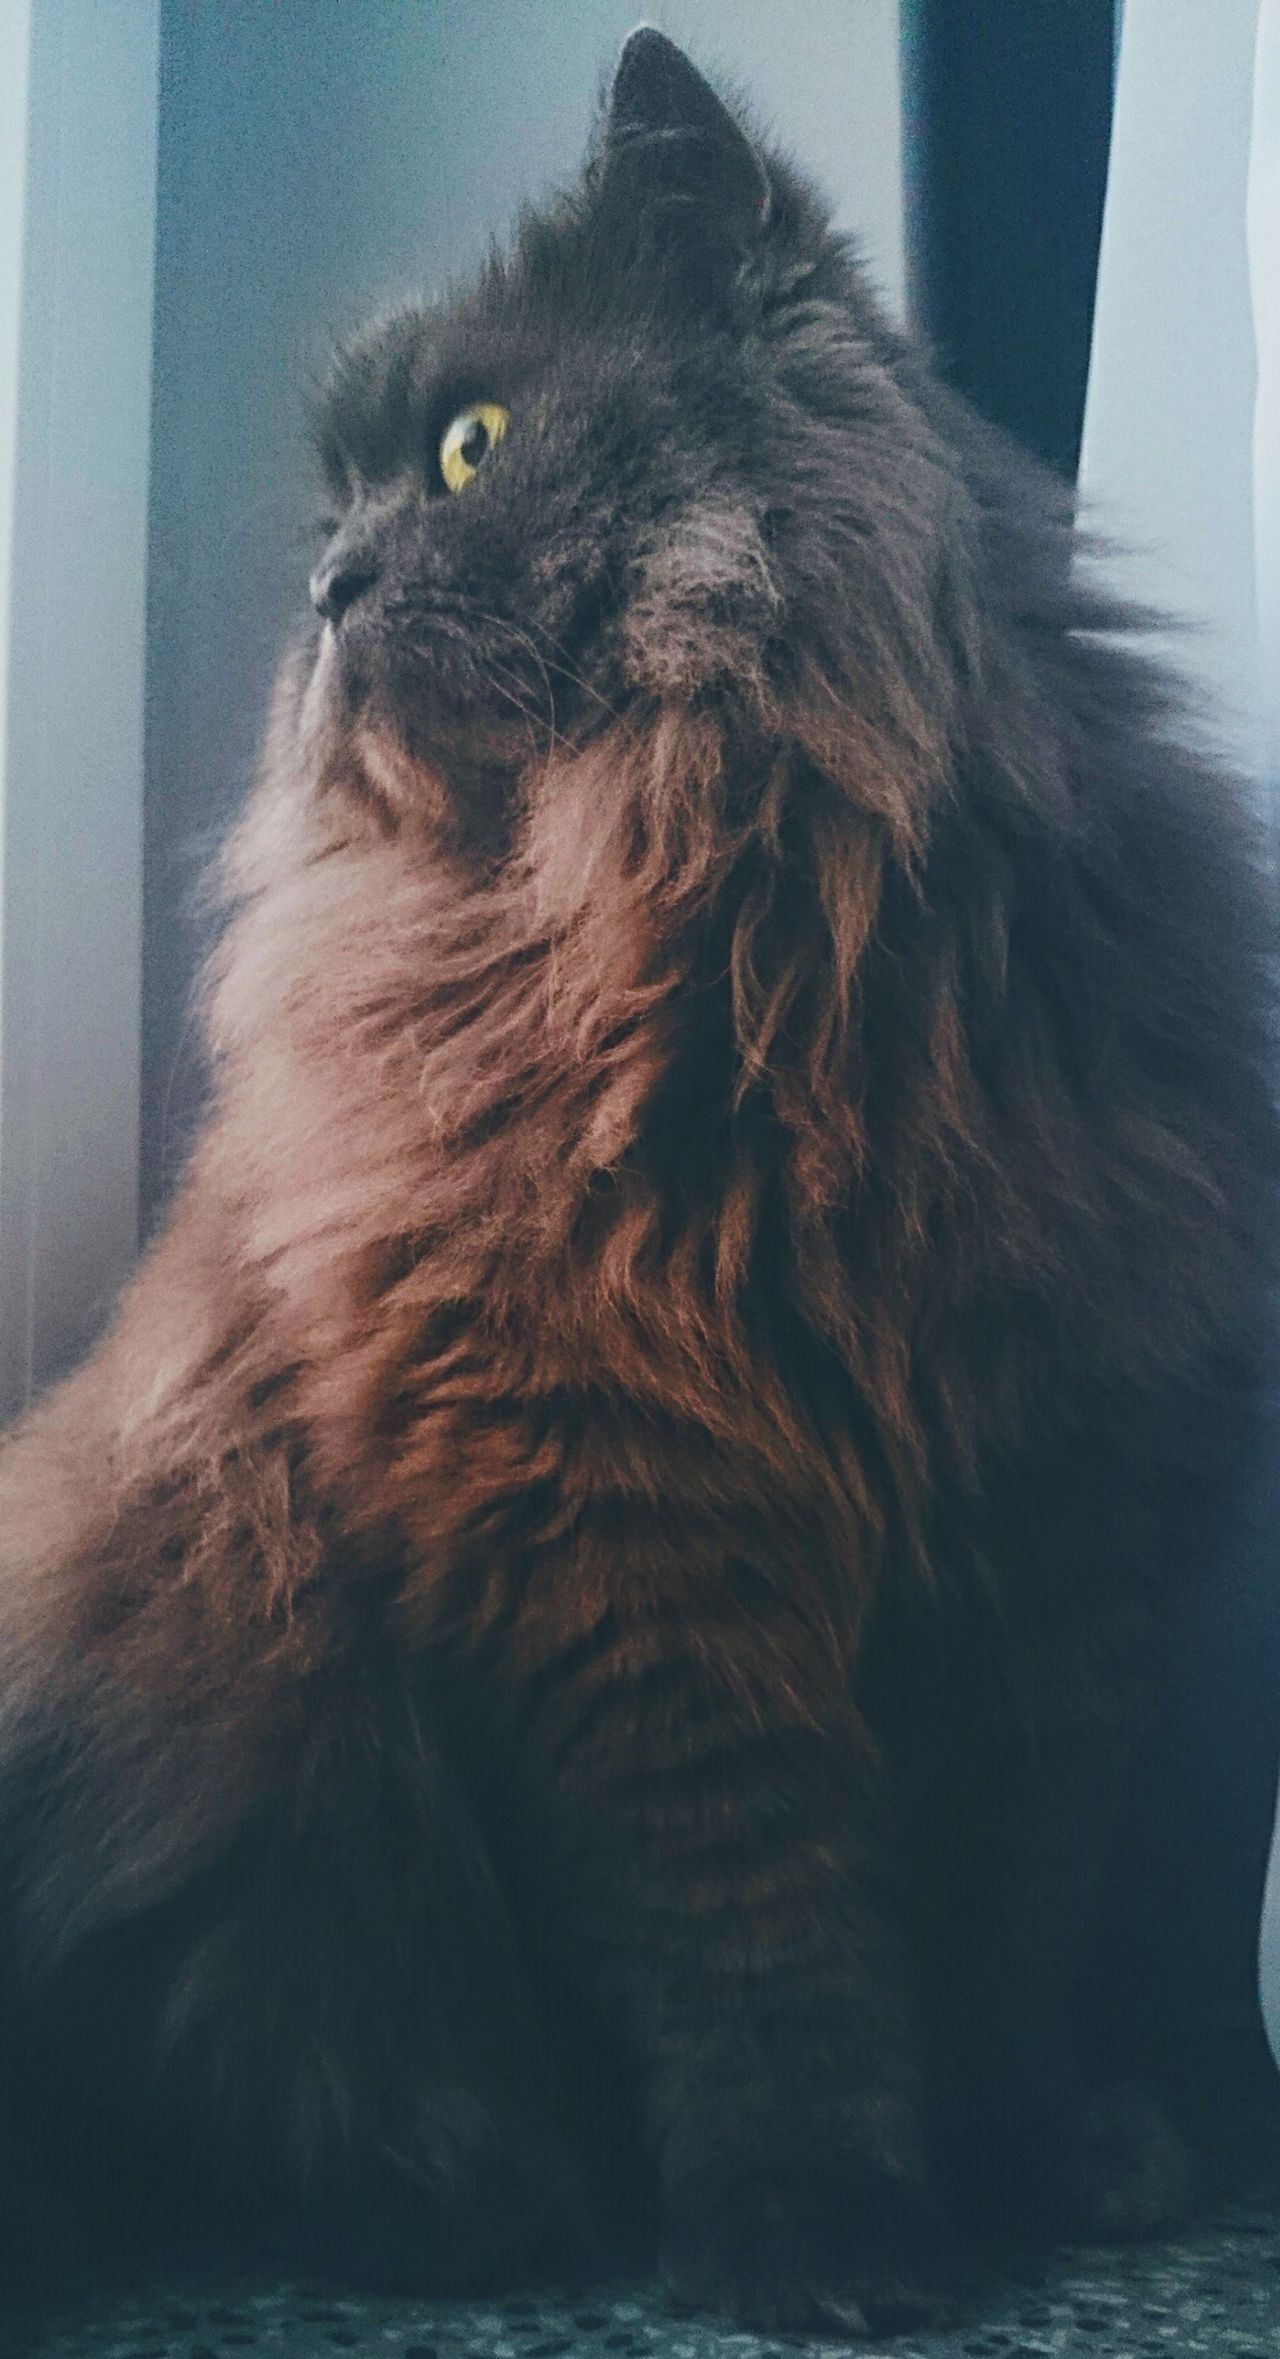 One Animal Pets Day Models Morning Light Cat Cat Lovers Cats Of EyeEm Cat Watching Catstagram Catlovers Catch The Moment Cat♡ Cats 🐱 Friendship Friends ❤ Friends Pet Love Sky And Clouds Close-up Animals In The Wild Anmial Lovecats Love❤ 😻my Sweety Cat😻